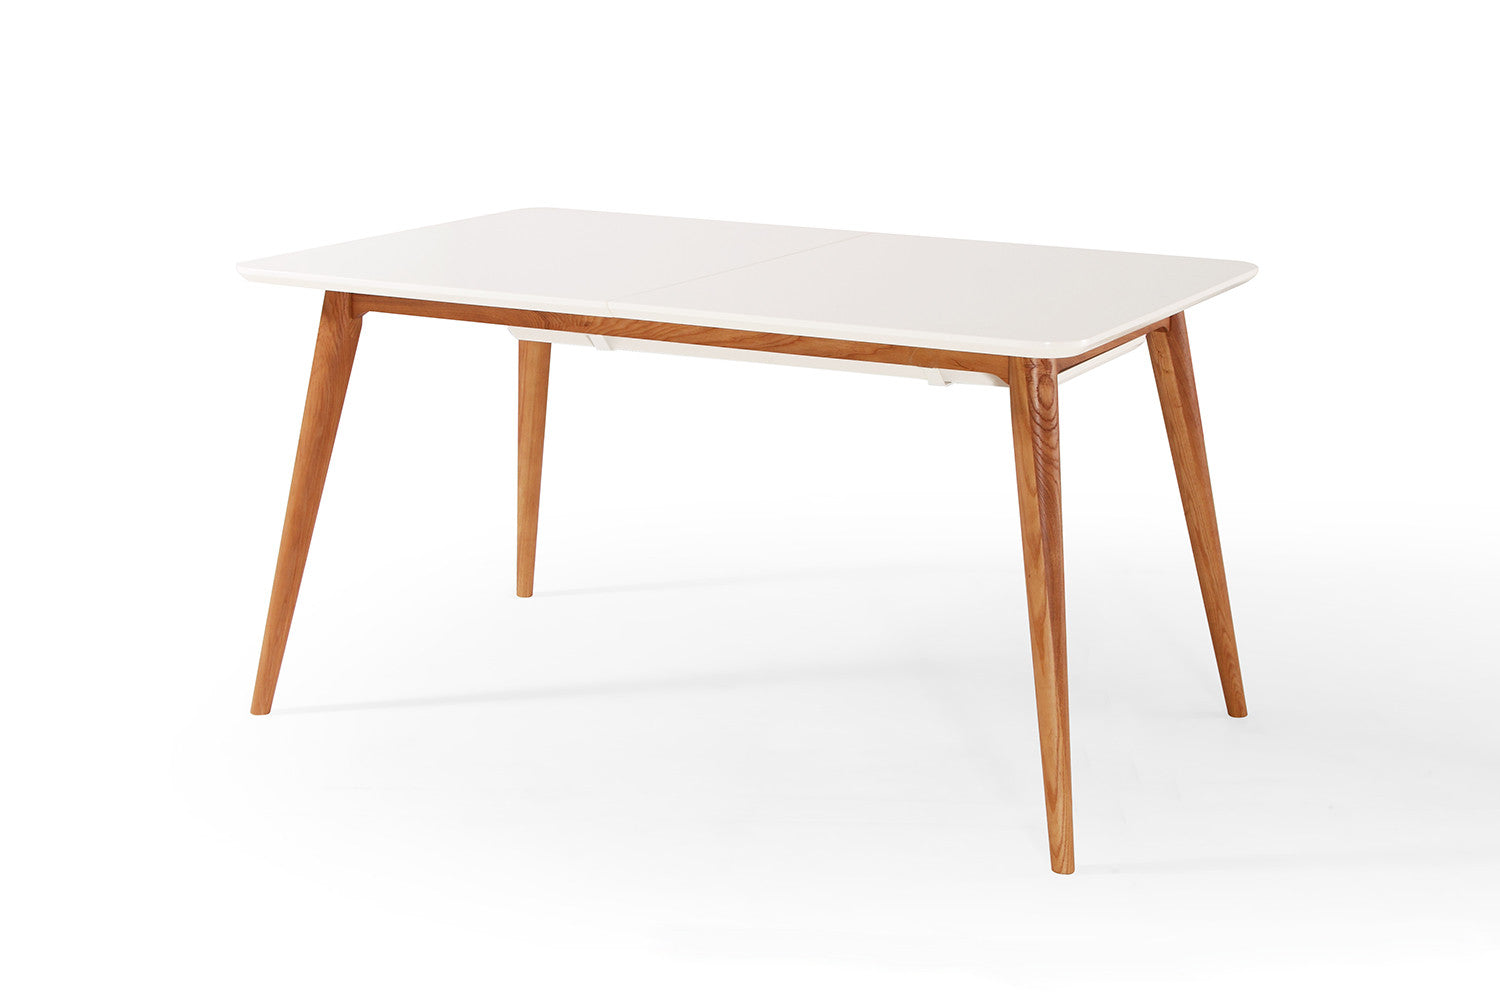 Table de salle manger extensible scandinave wyna dewarens for Table design extensible salle a manger